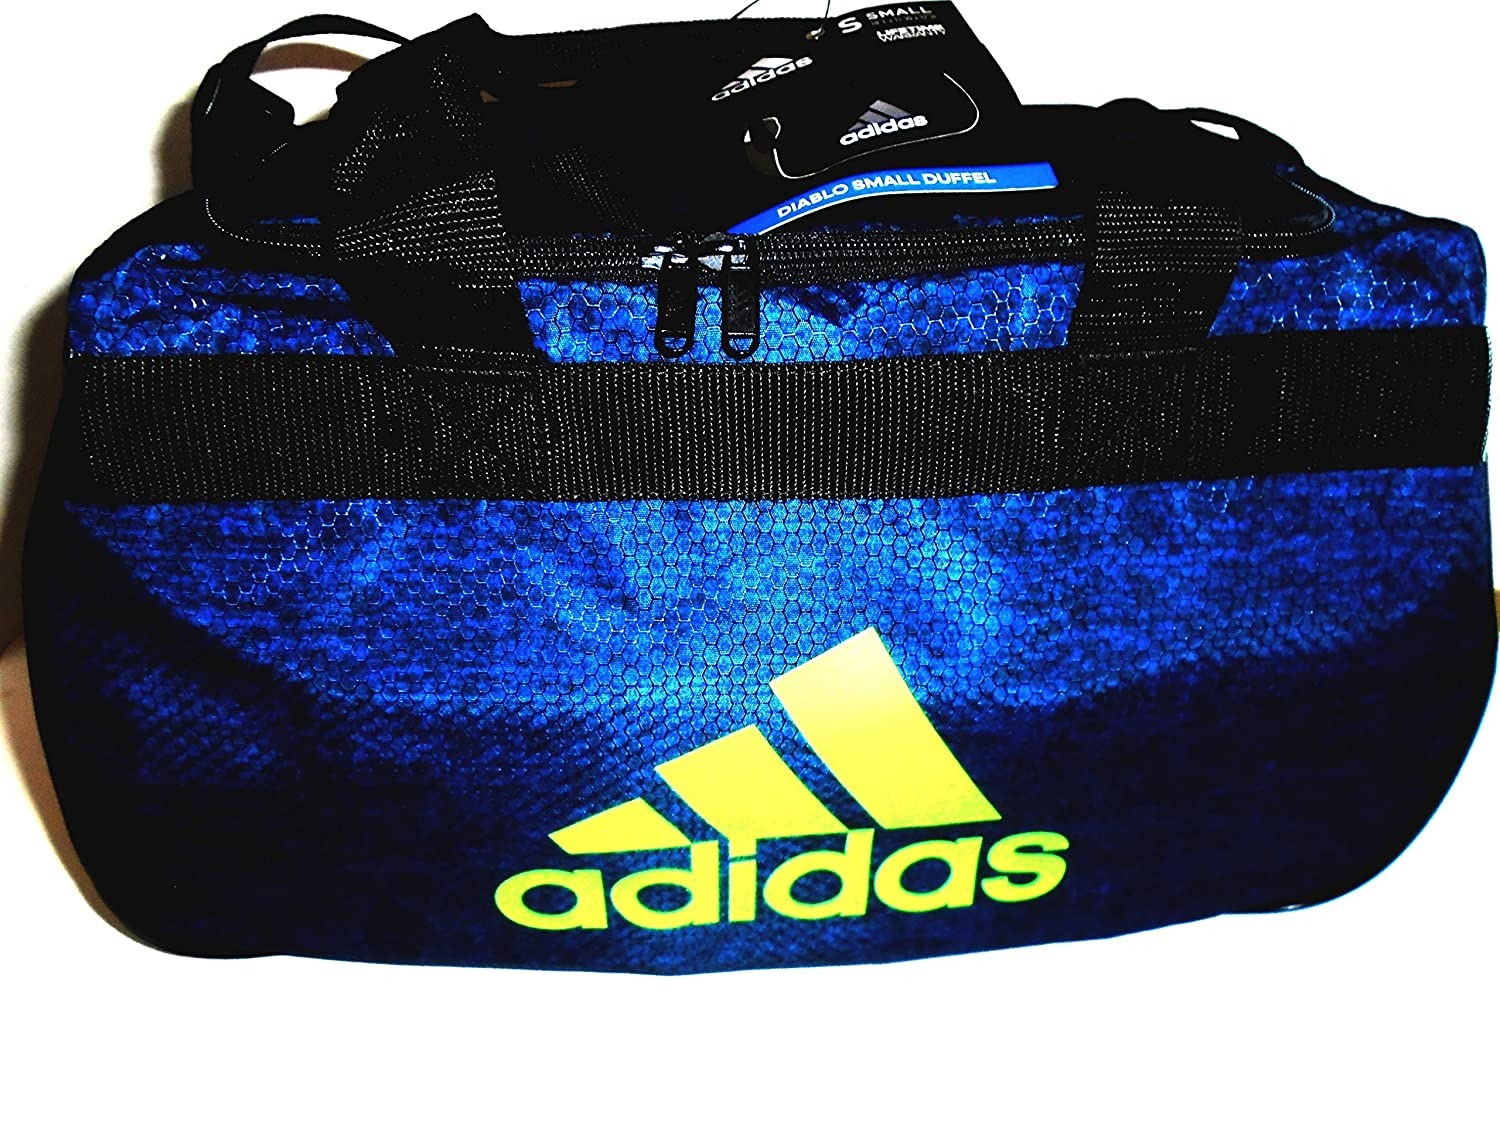 0d09dc911510 adidas Diablo II Gear Up Small Gym Travel All Sports Gear Duffle Bag  (Collegiate Navy